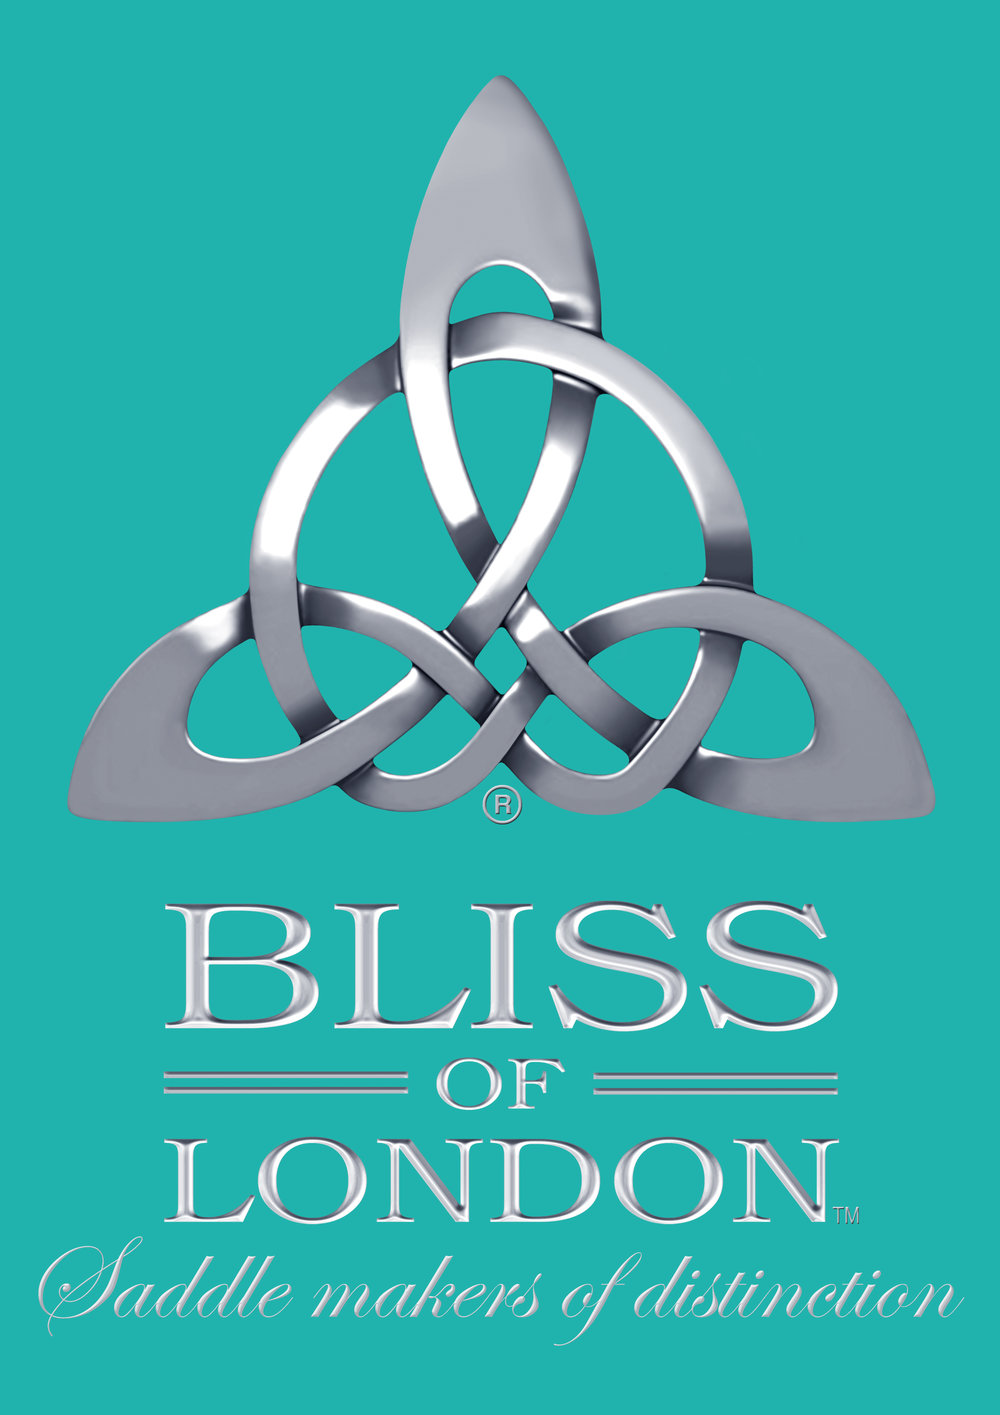 Bliss of London high resolution.jpg